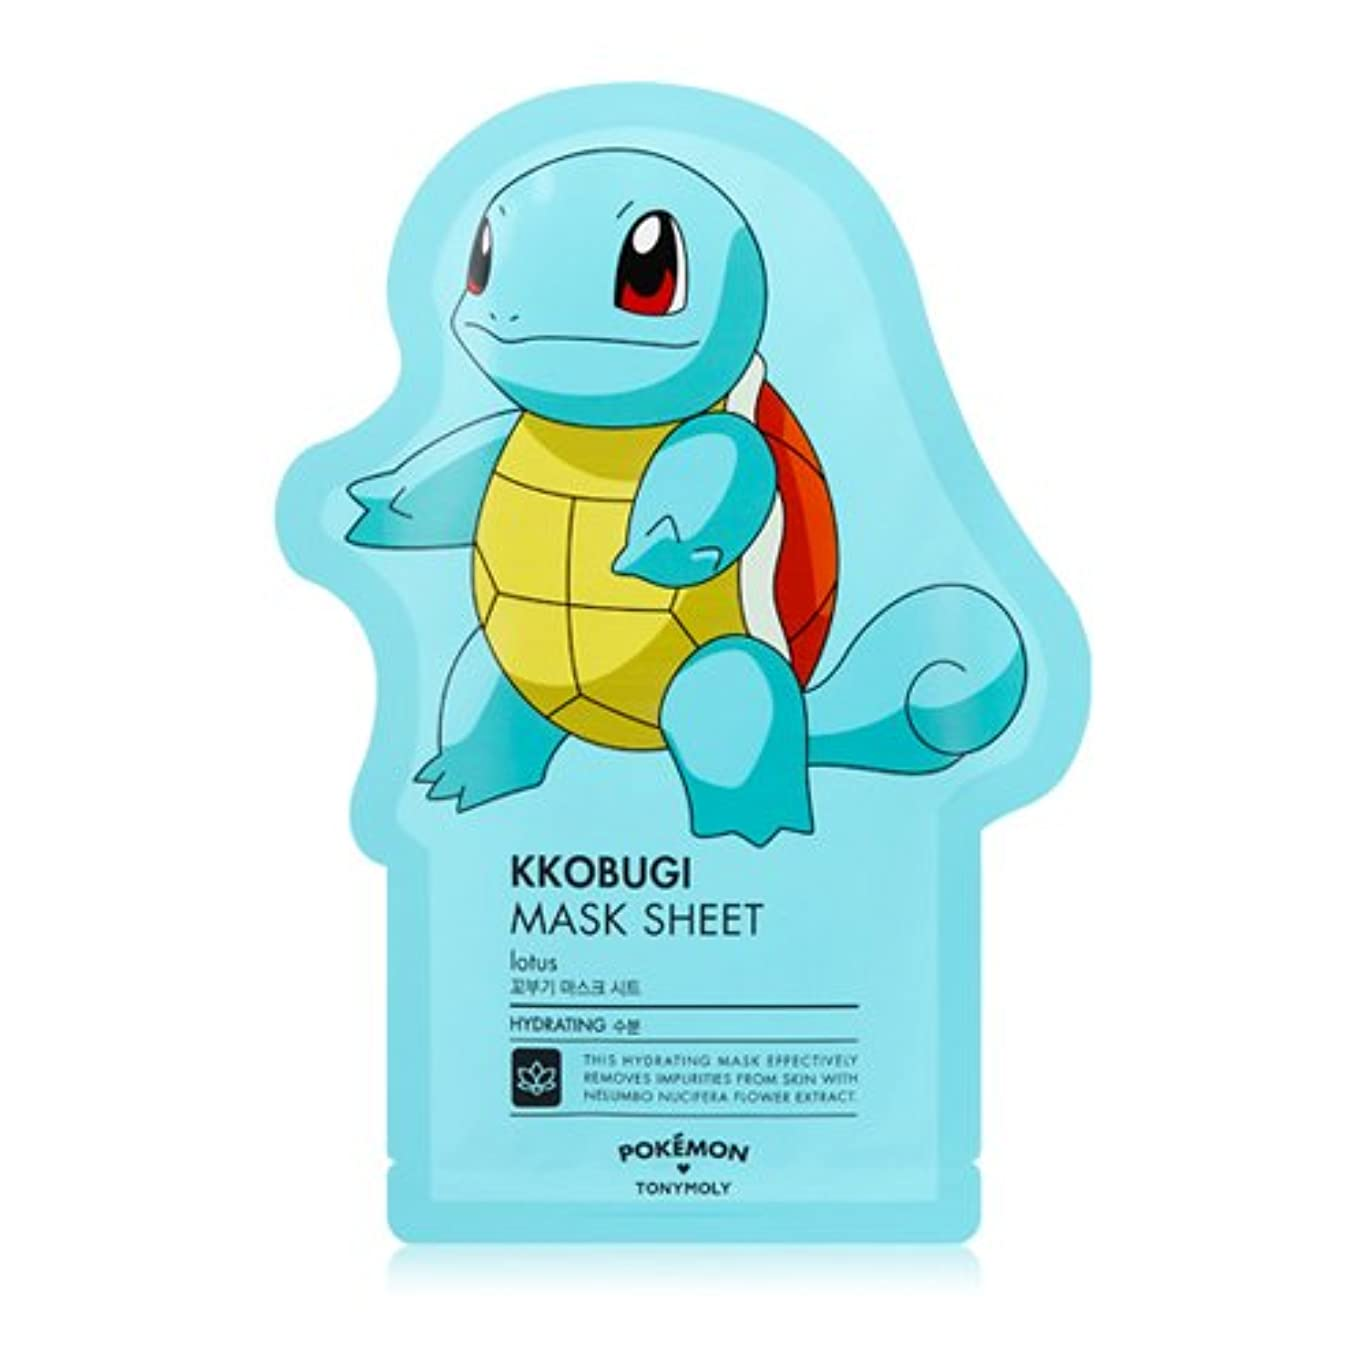 コンサート接尾辞普及(3 Pack) TONYMOLY x Pokemon Squirtle/Kkobugi Mask Sheet (並行輸入品)